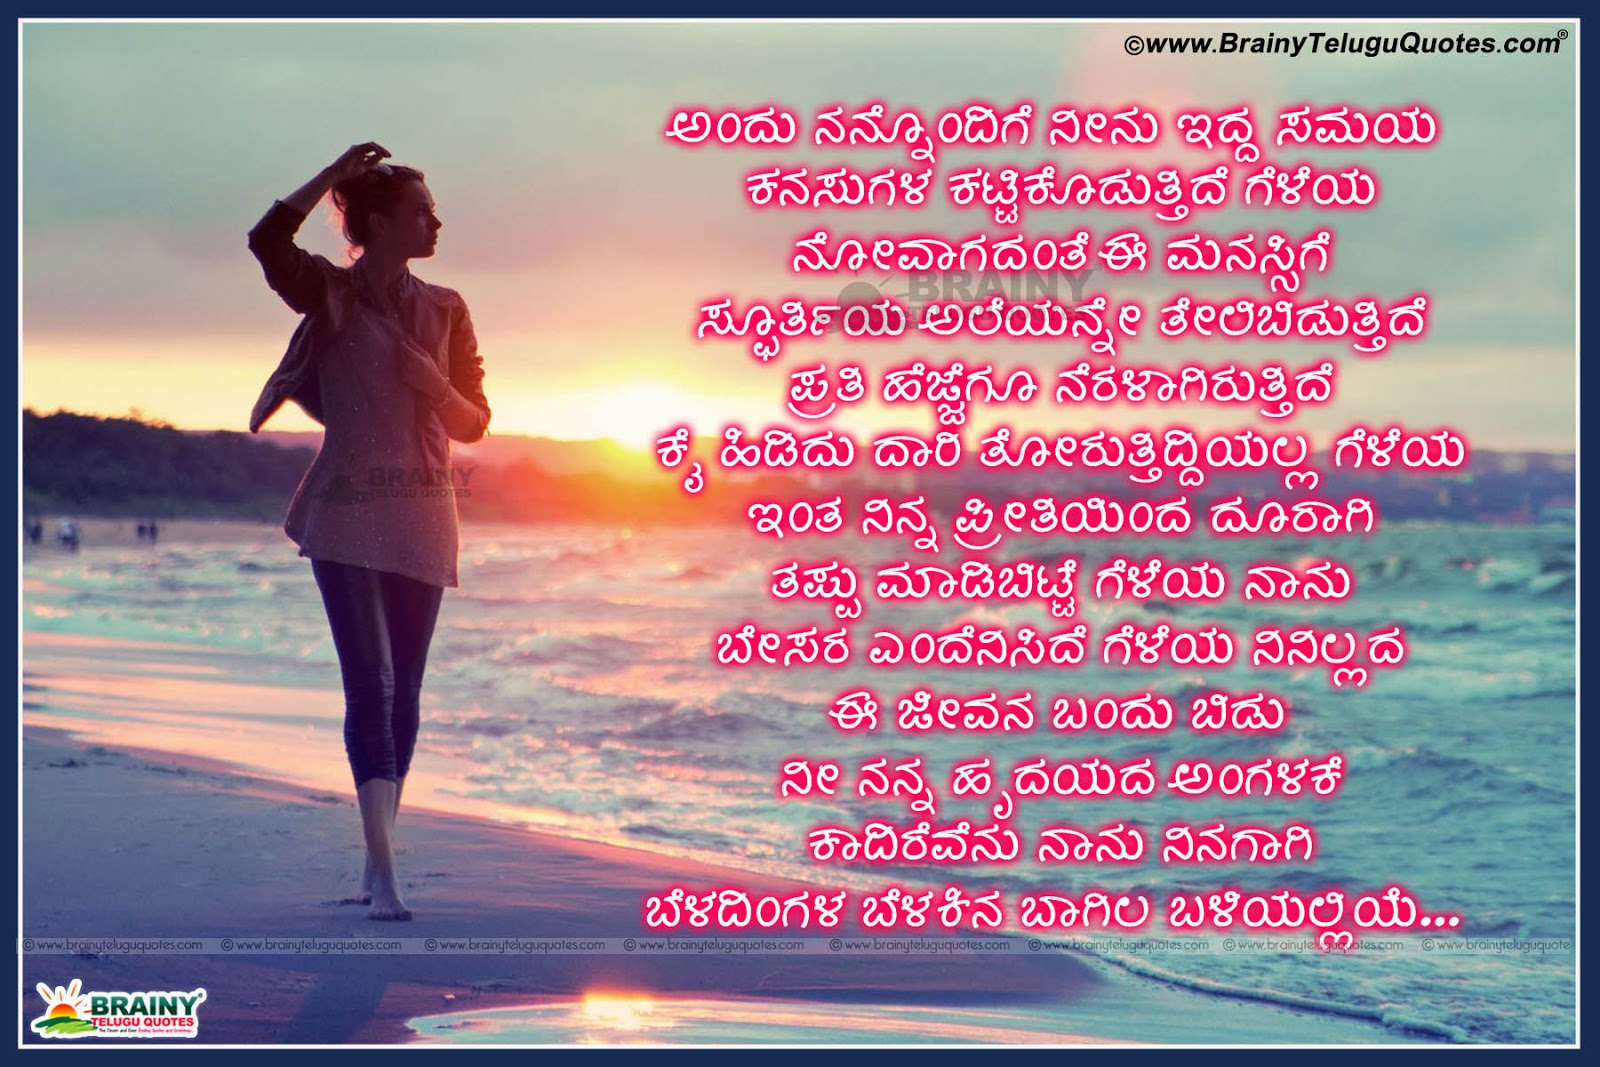 Popular Kannada Love Quotes : Kannada new Love Status for Fb, Most Popular Love Sayings in Kannada ...